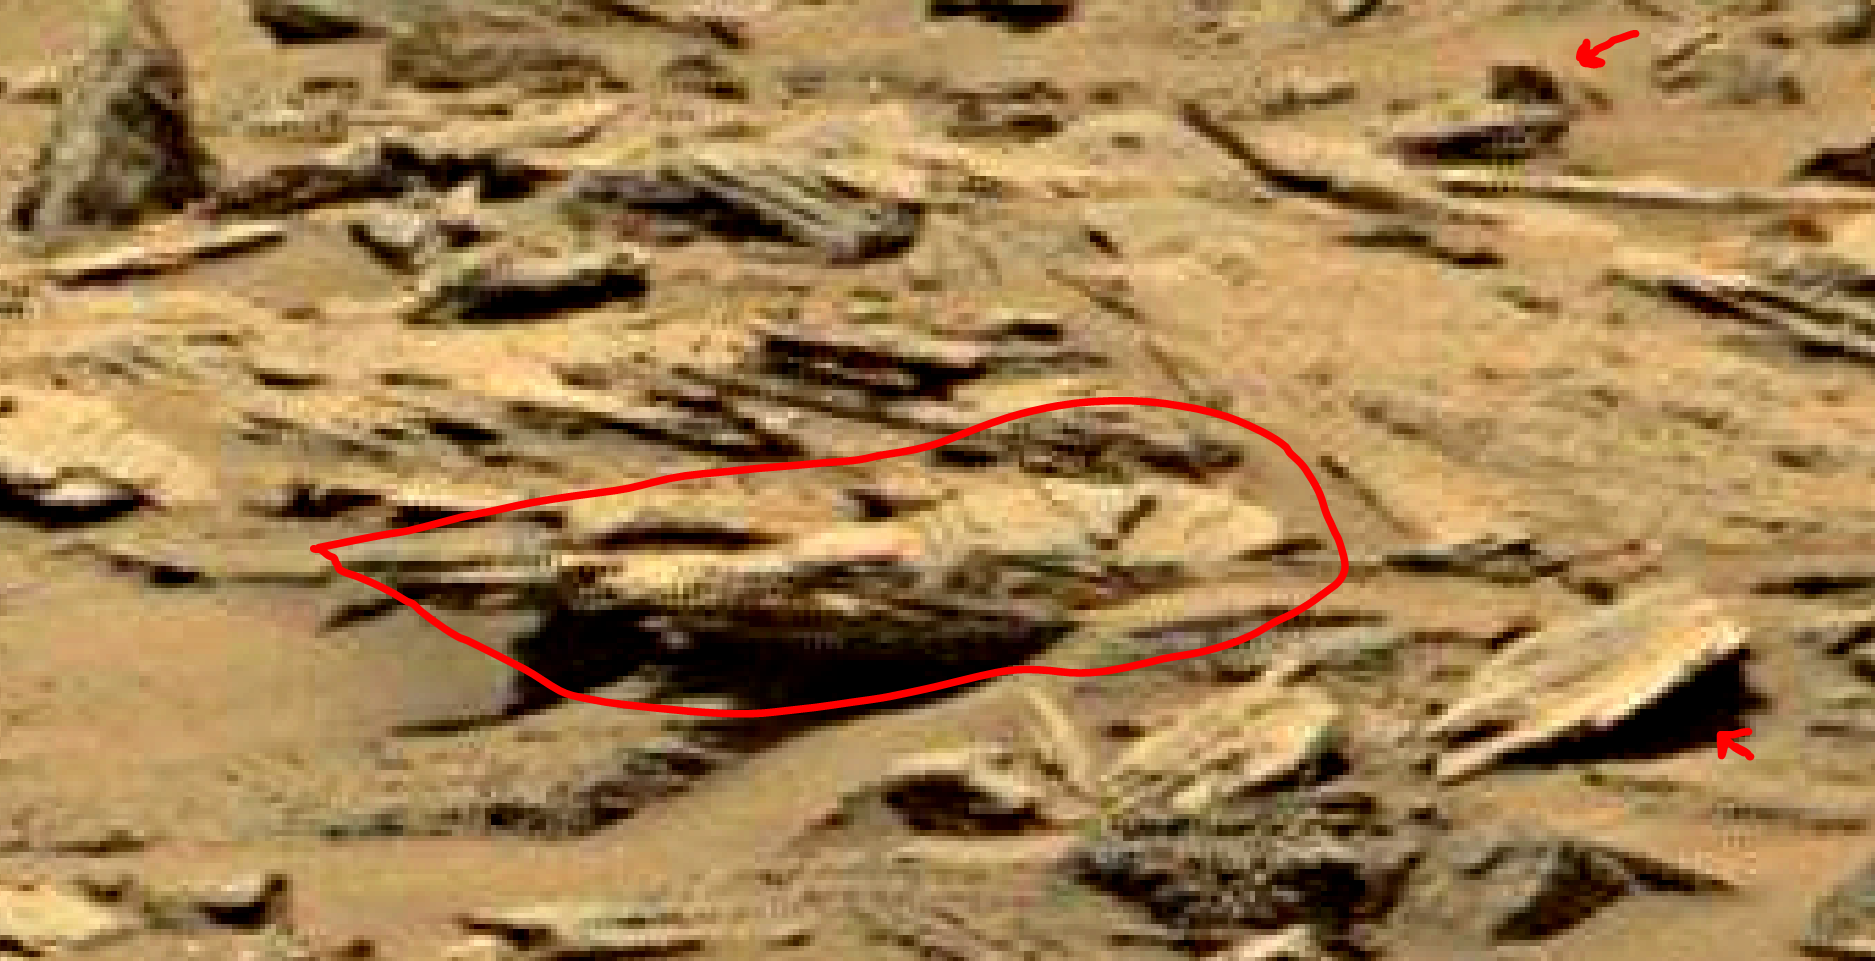 mars sol 1353 anomaly-artifacts 5a was life on mars